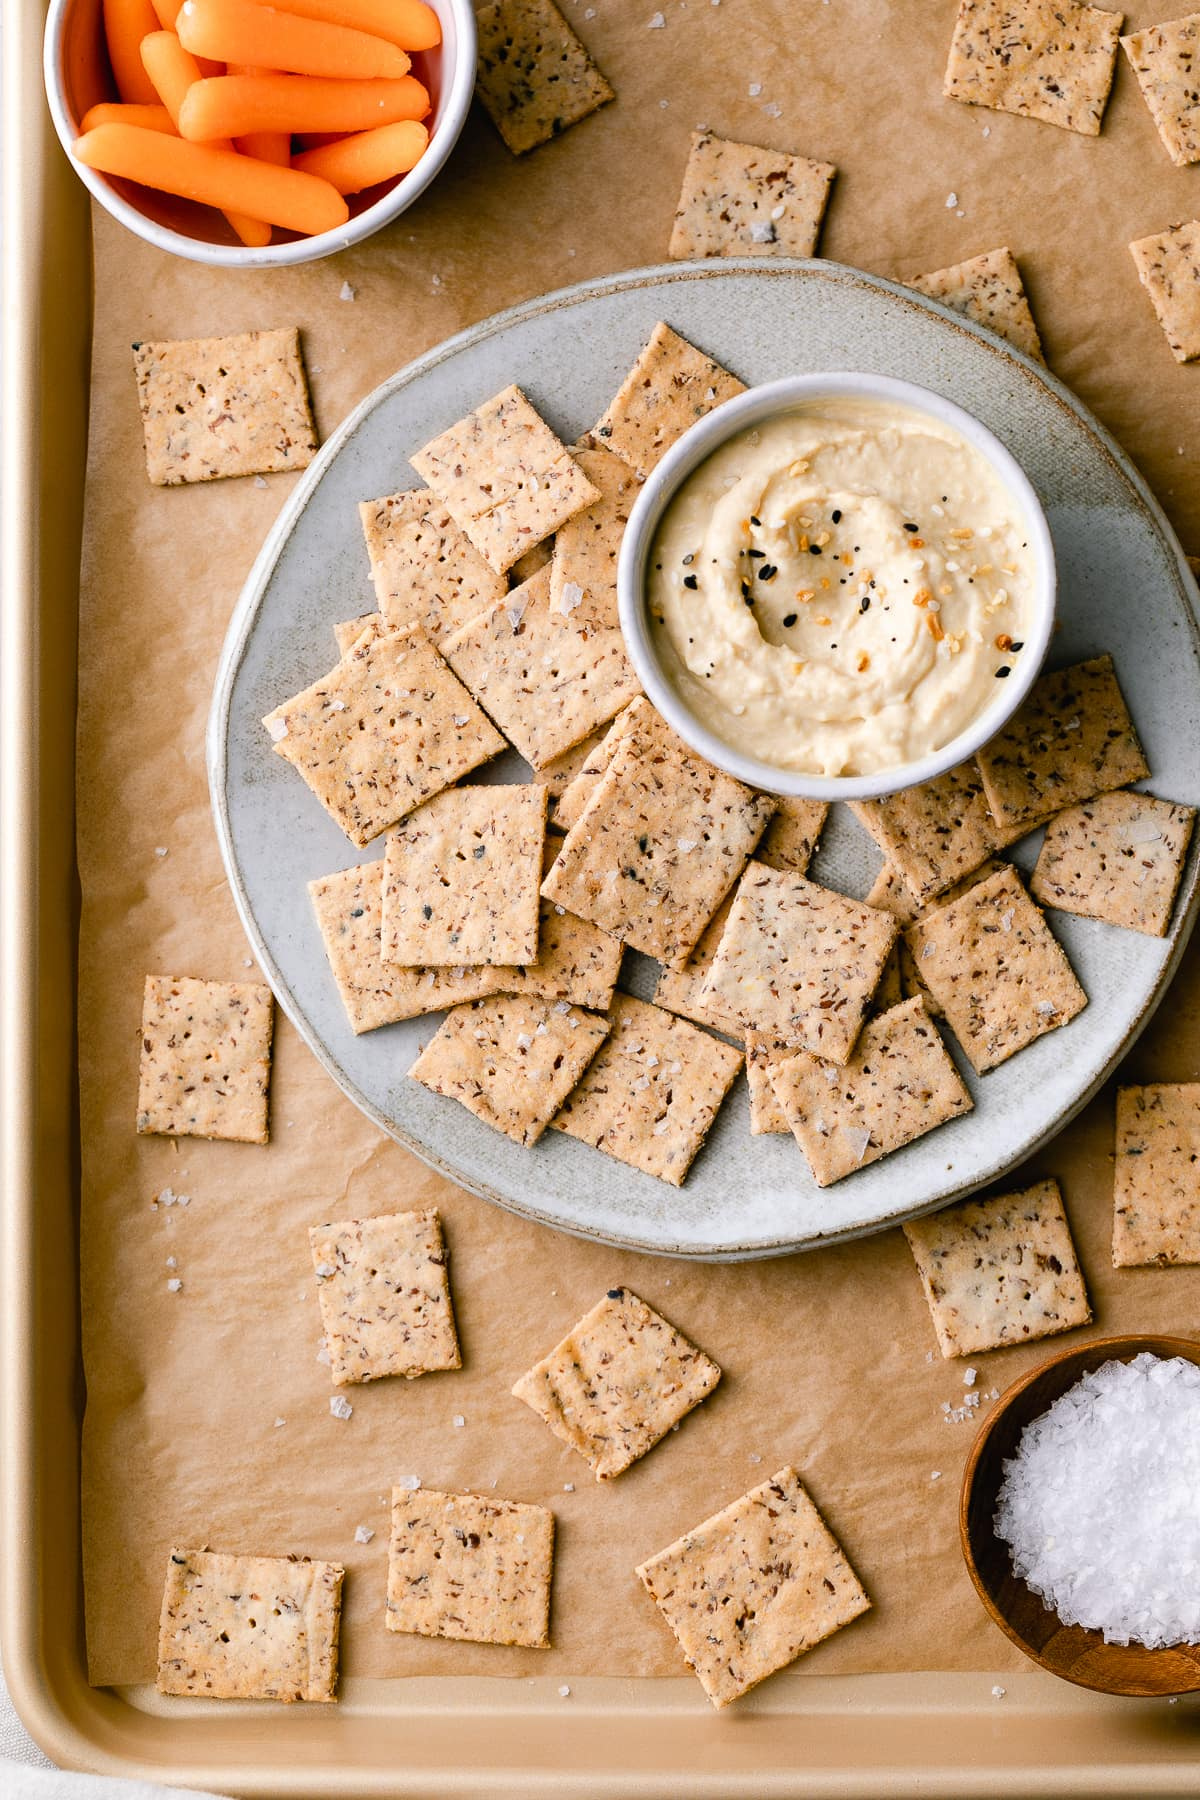 top down view of almond flour crackers on a plate with items surrounding.